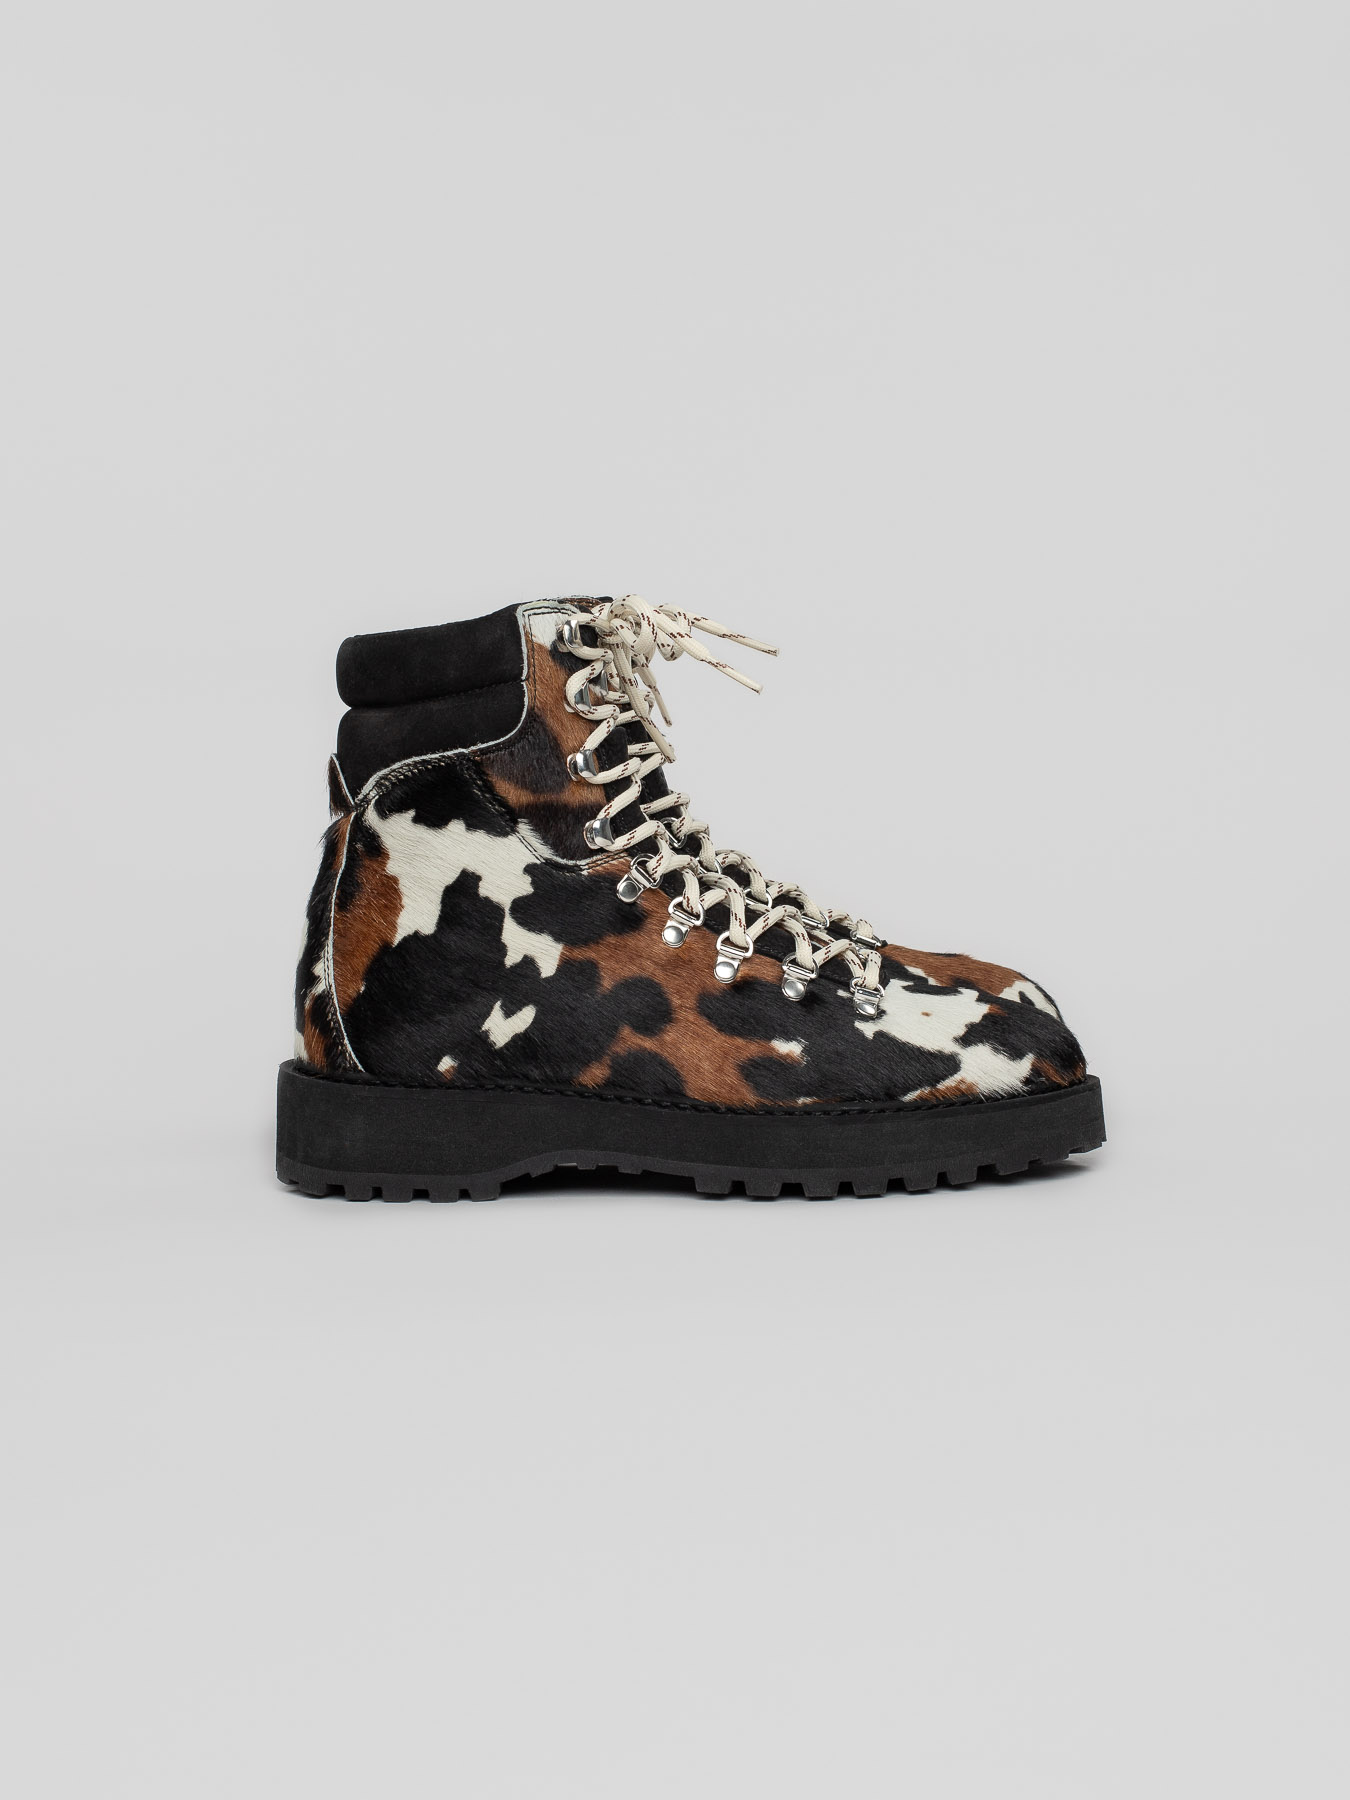 Diemme Monfumo Cow are the perfect winter boots